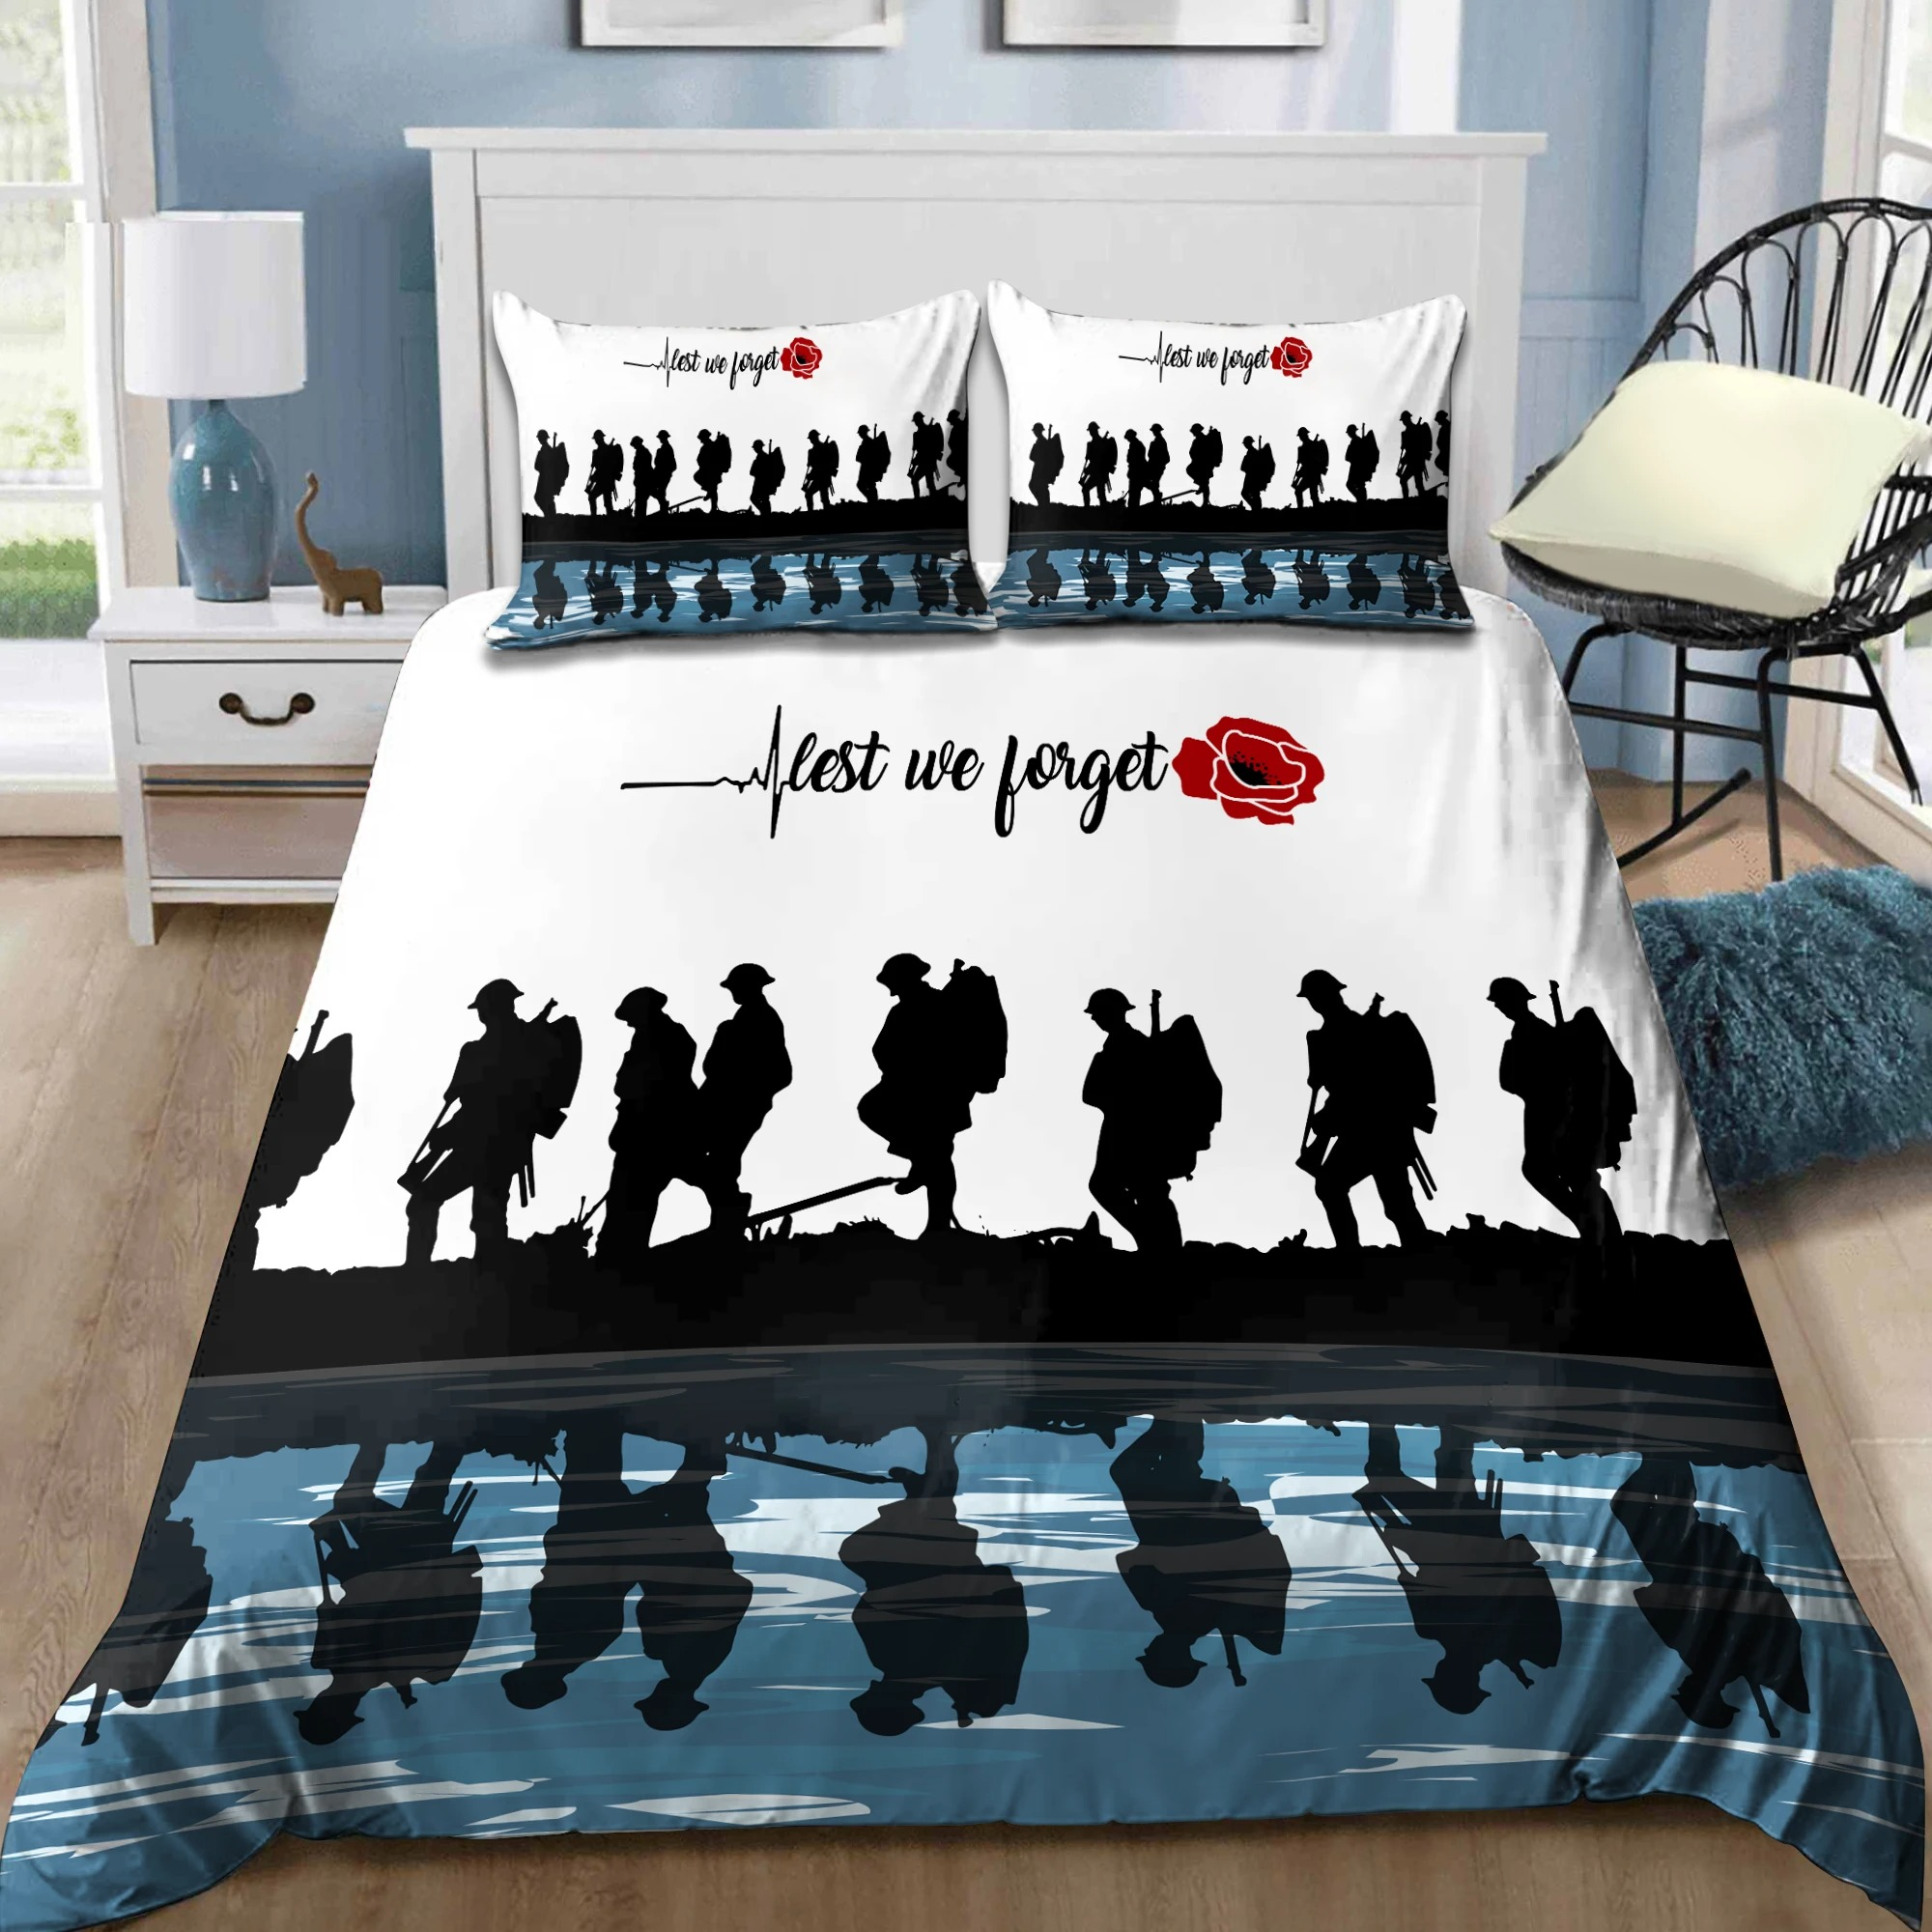 UK Veteran Let we forget honor the fallen bedding set2